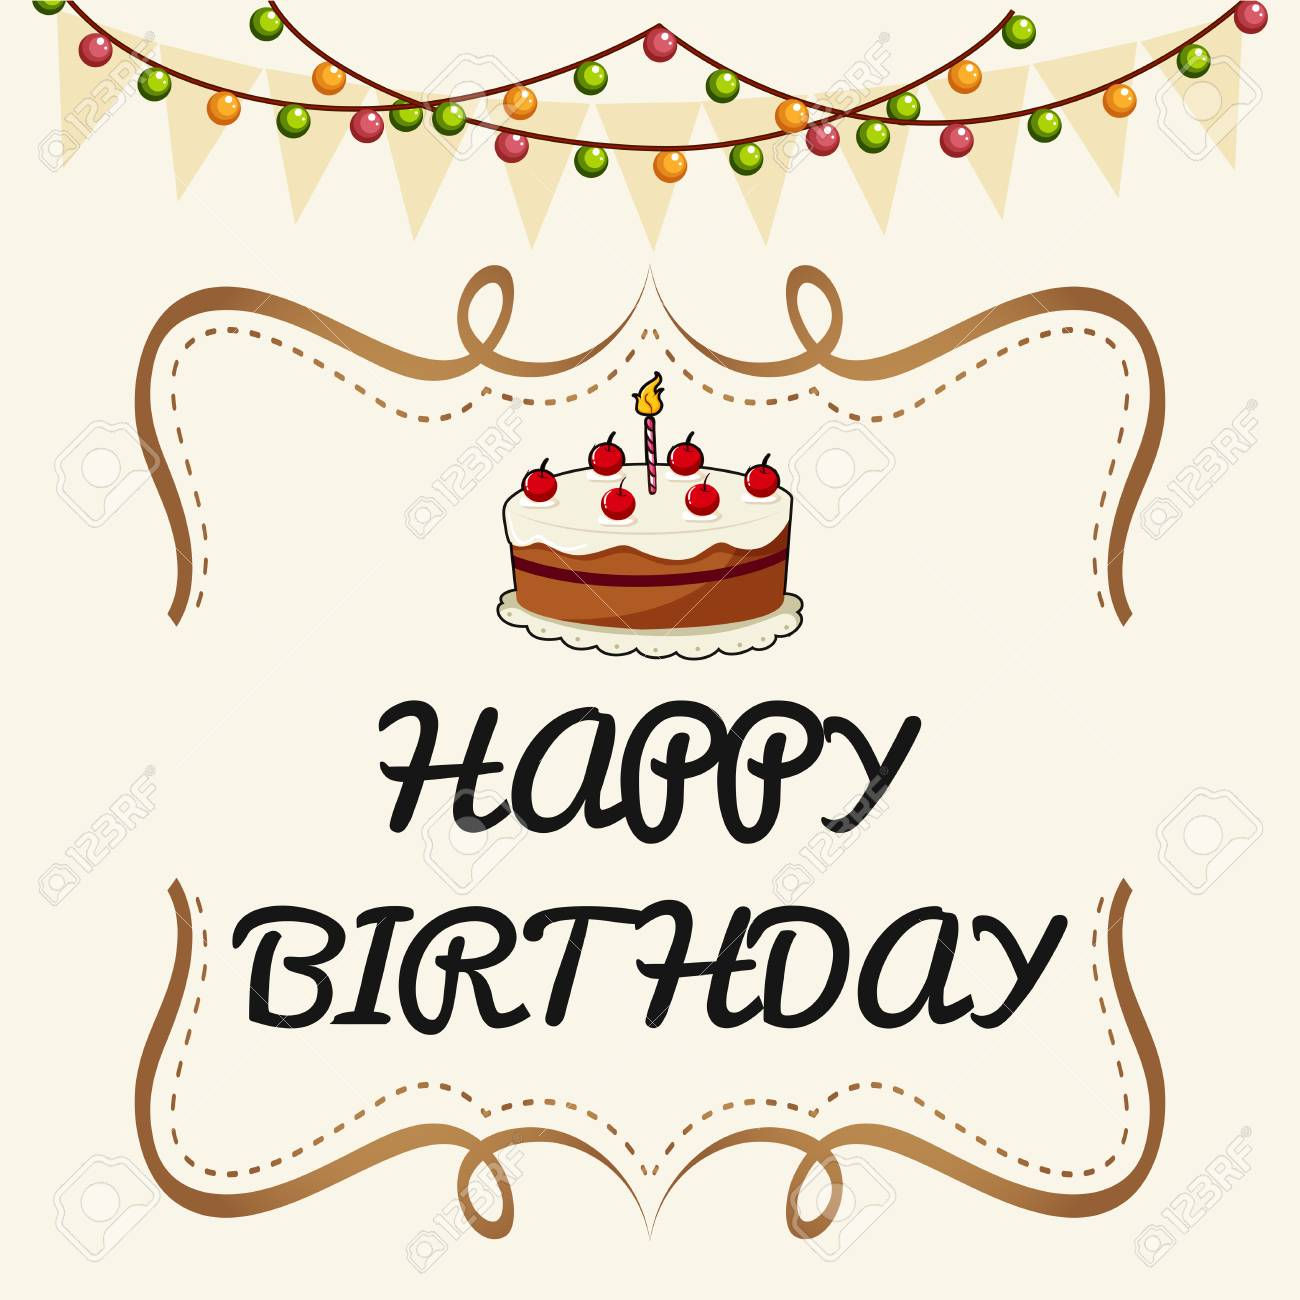 Happy Birthday Card Template With Cake And Lights Illustration Stock Vector    81697201